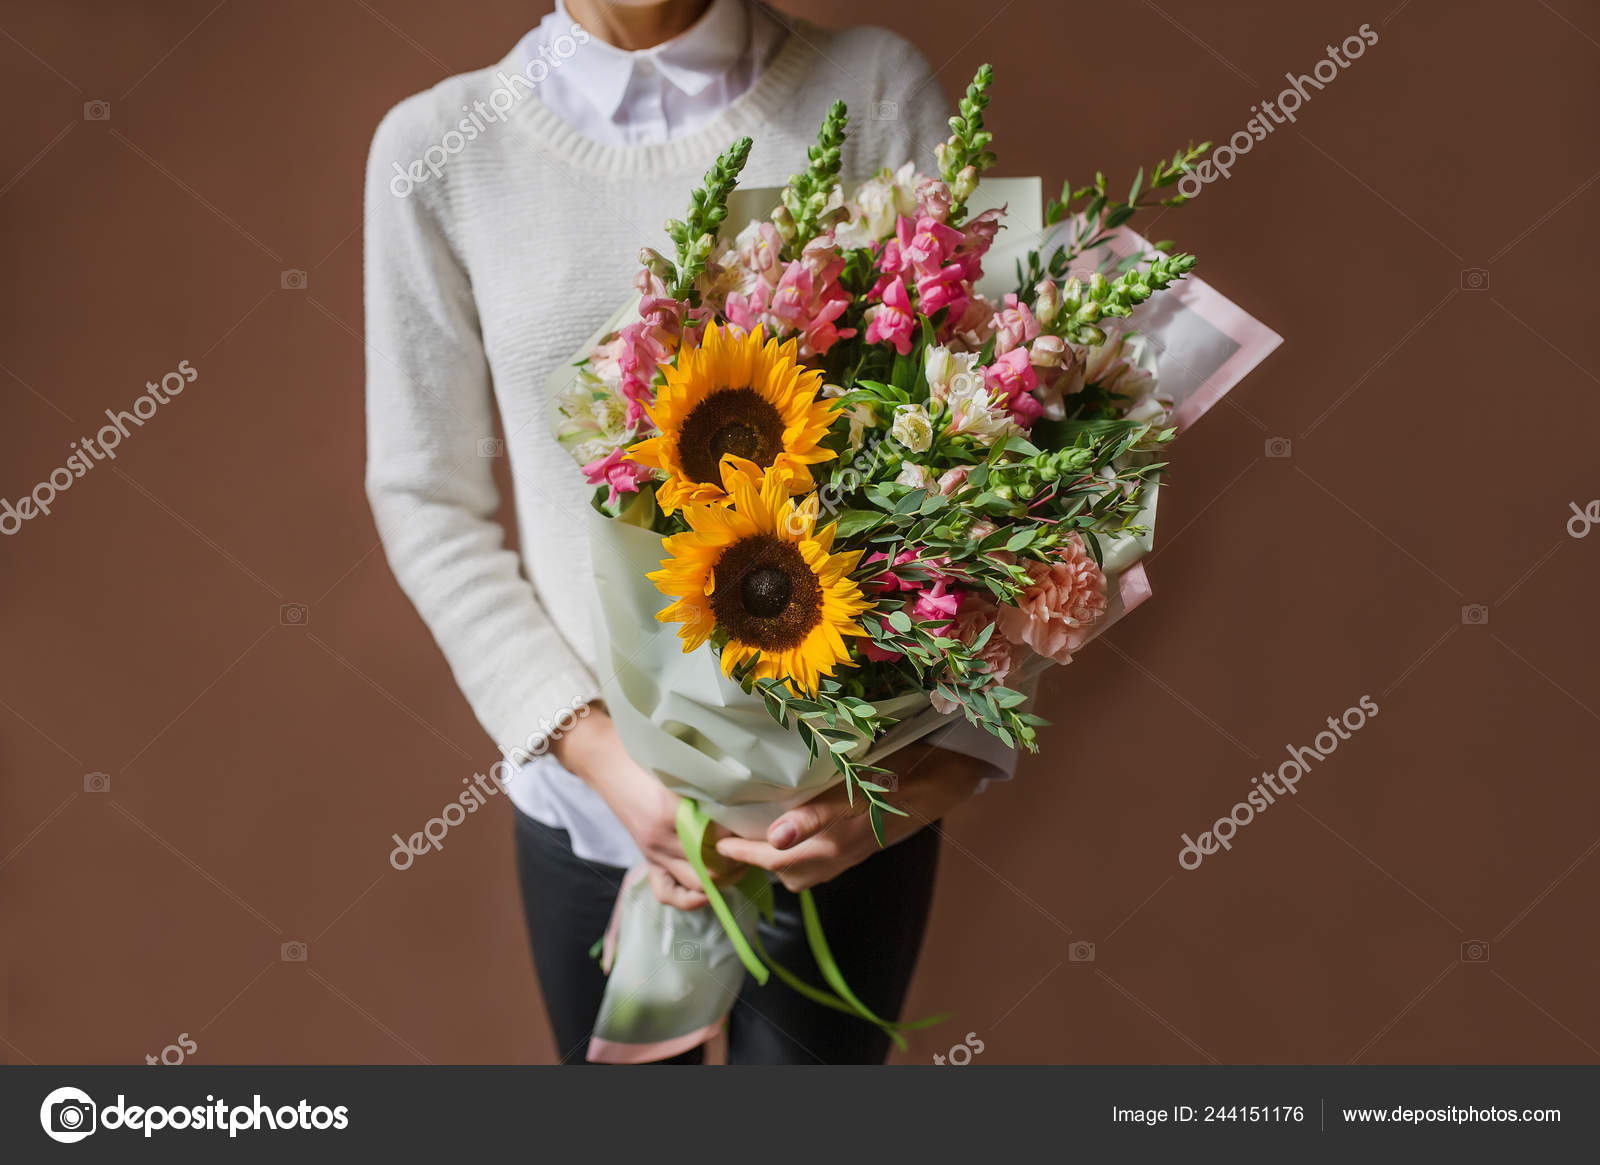 Woman Holding Bouquet Beautiful Flowers Hands March Woman Day Sunflower Stock Photo C Avk78 244151176